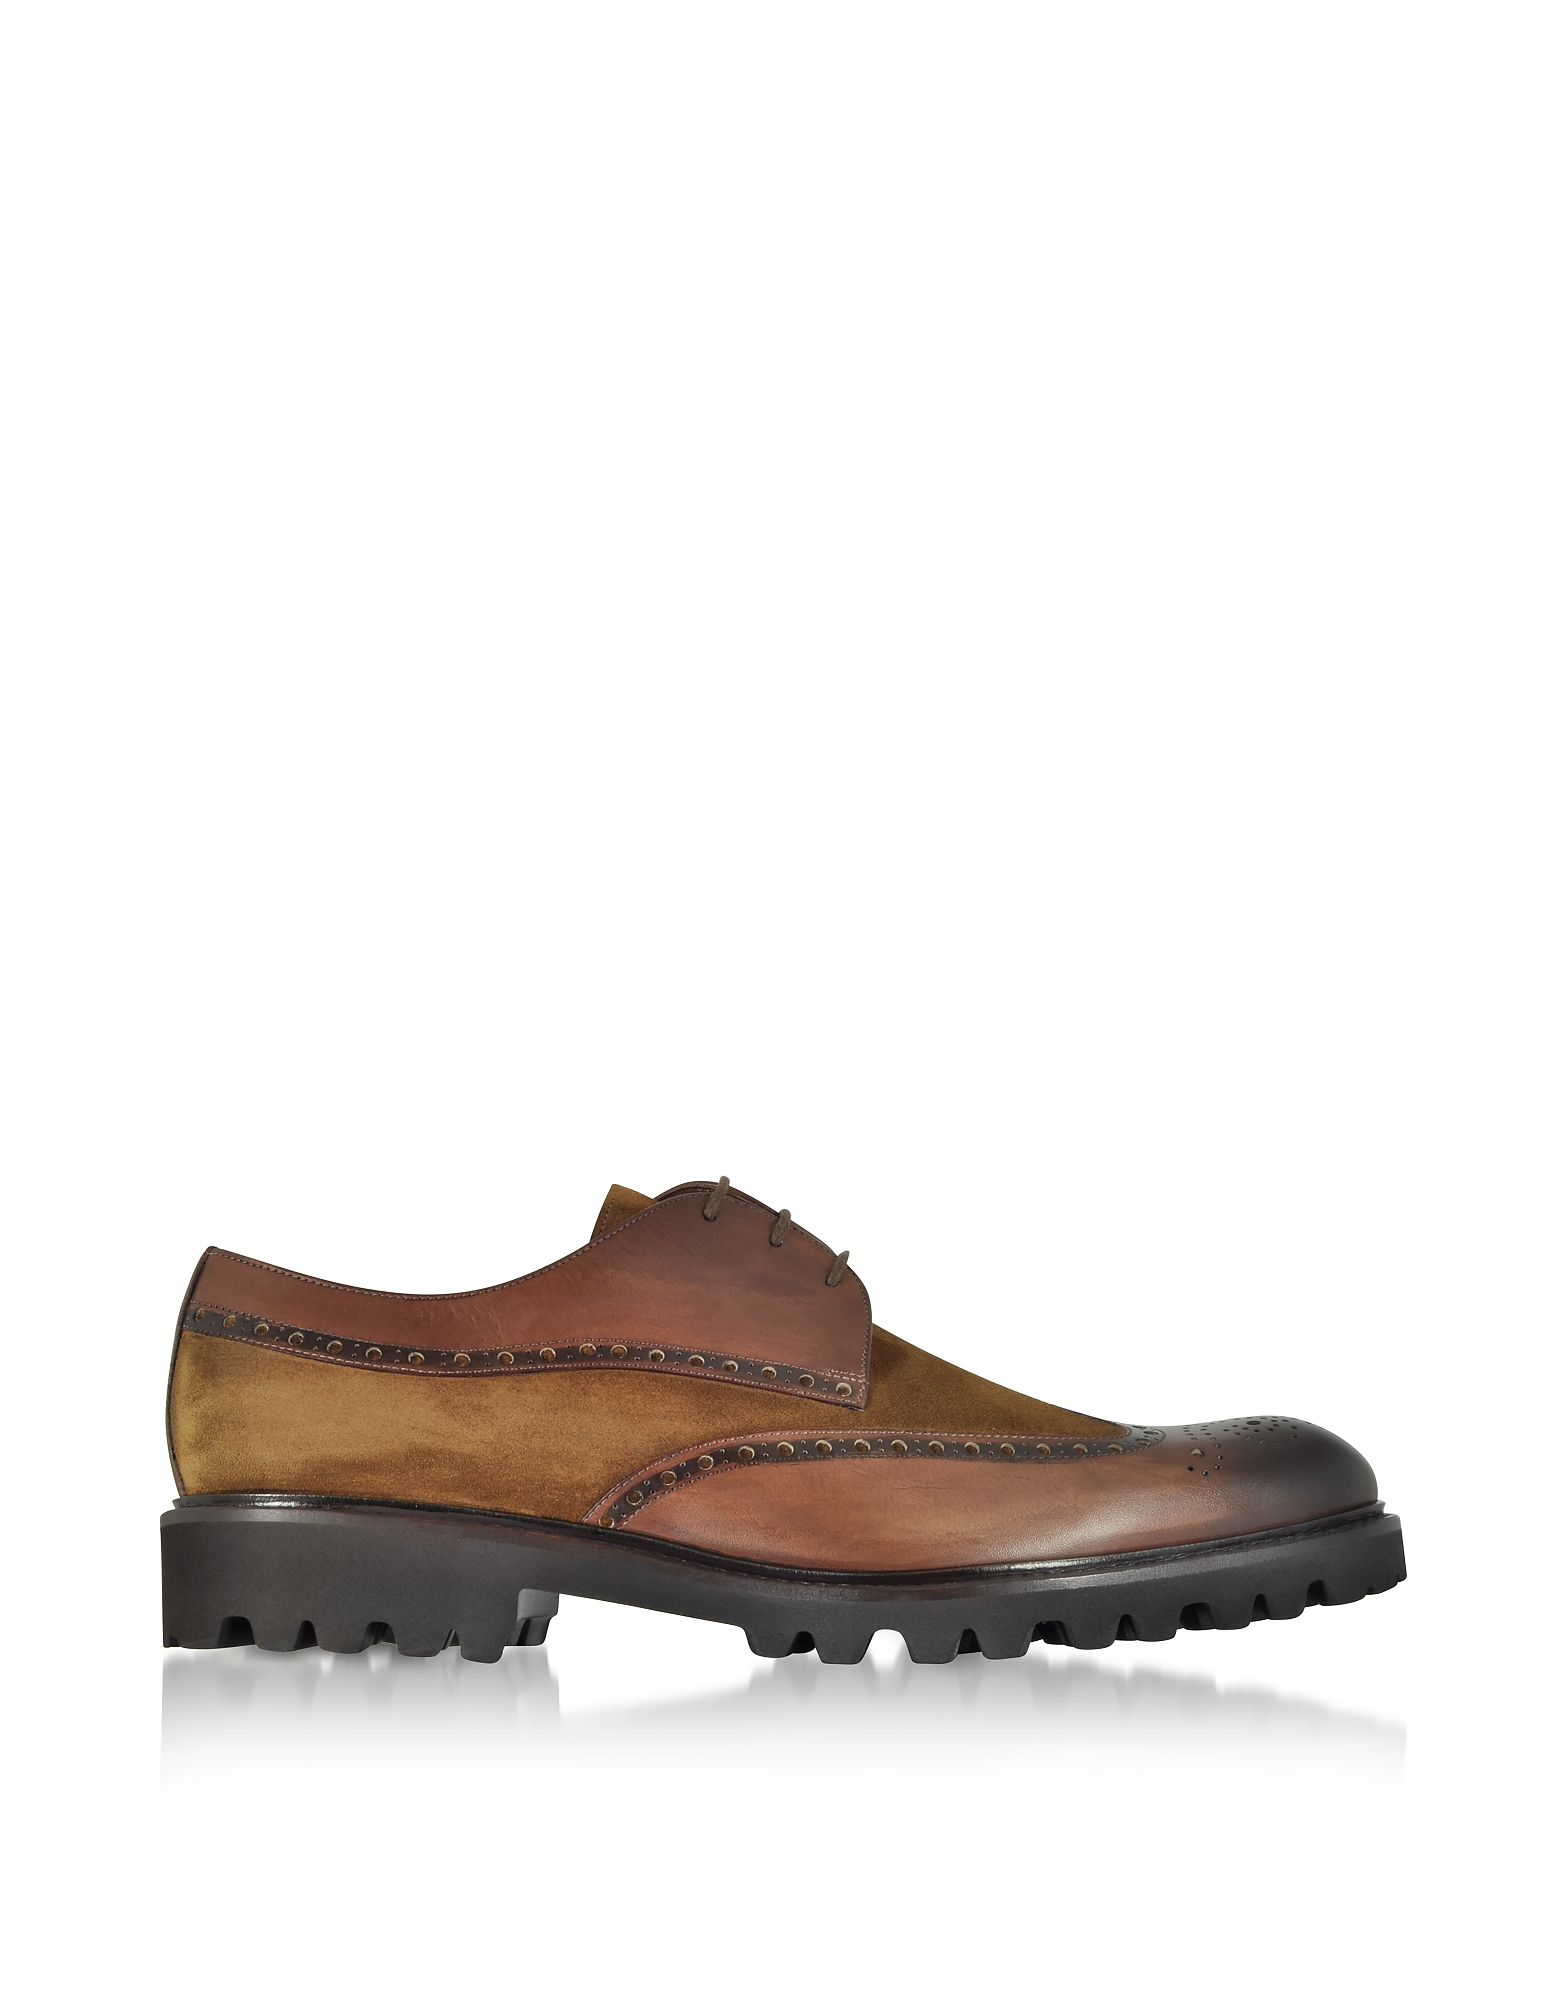 Fratelli Borgioli Designer Shoes, Walnut Leather and Suede Oxford Shoes